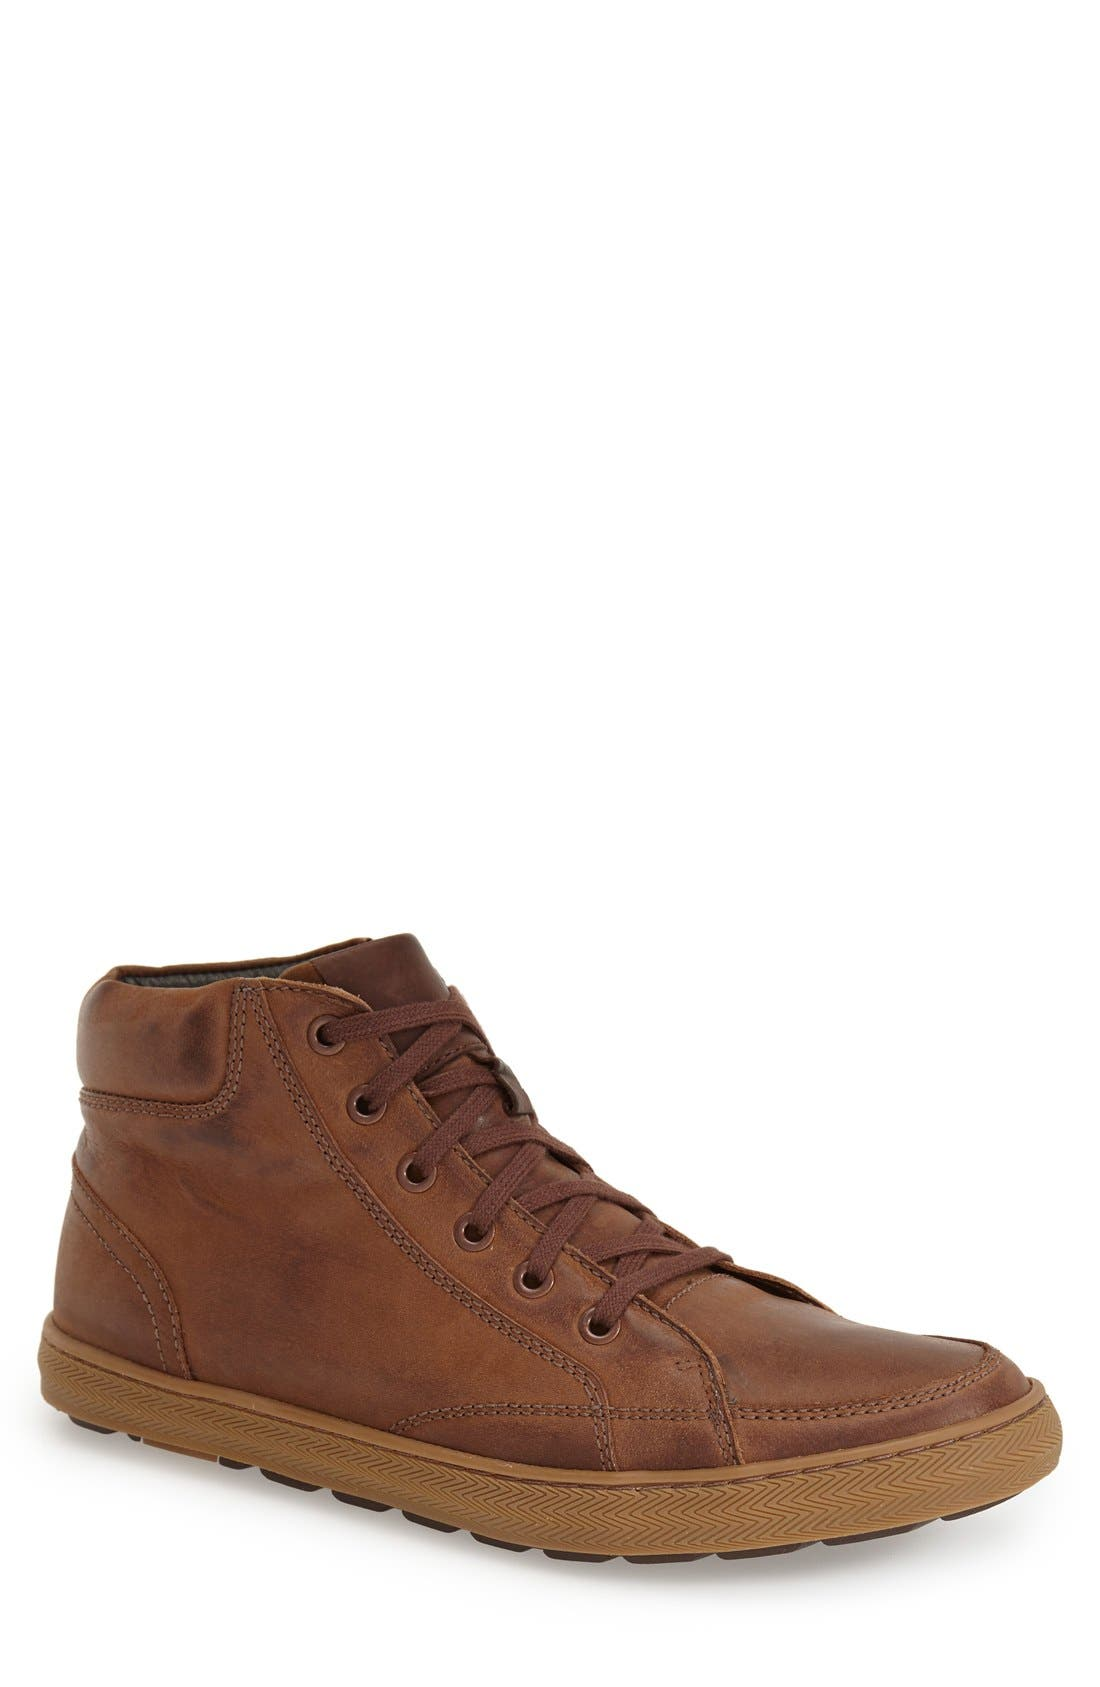 Anatomic & Co Santos Sneaker (Men)